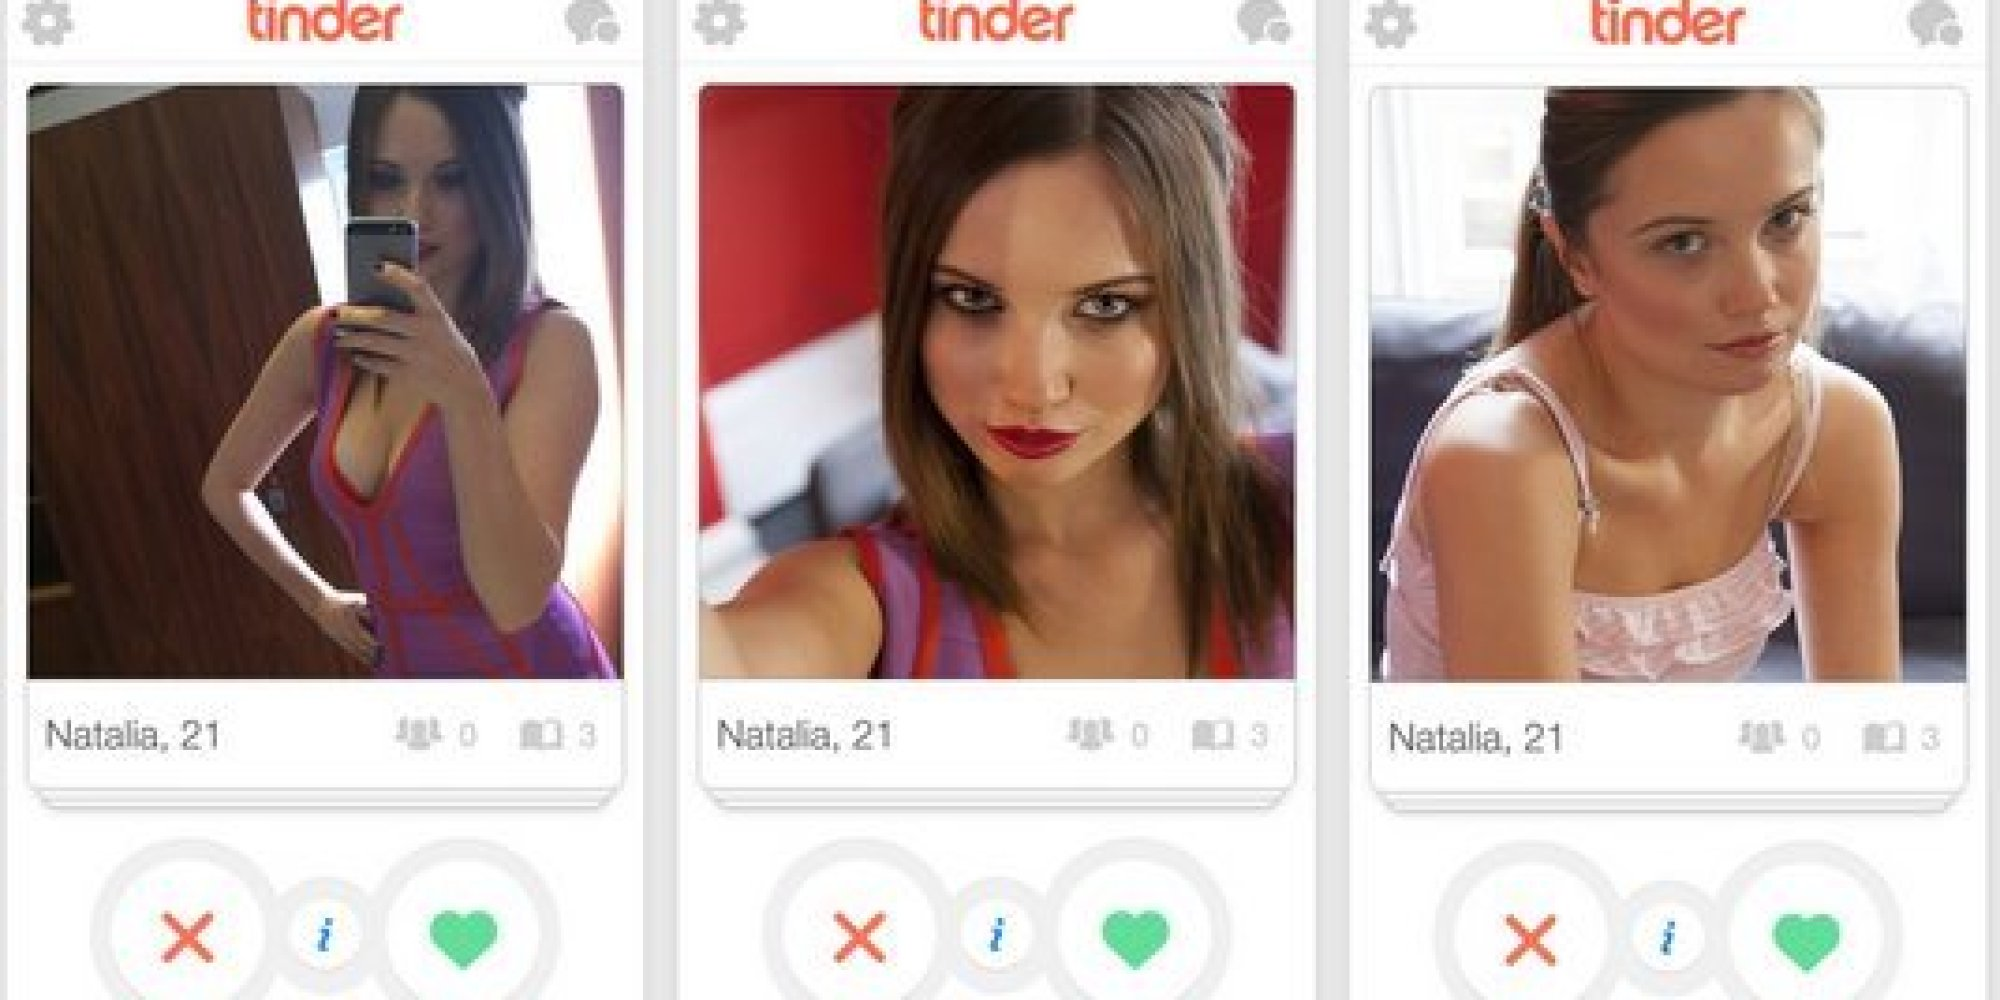 10 Best Hookup Apps  2018 Free Sex Apps for Fling amp One